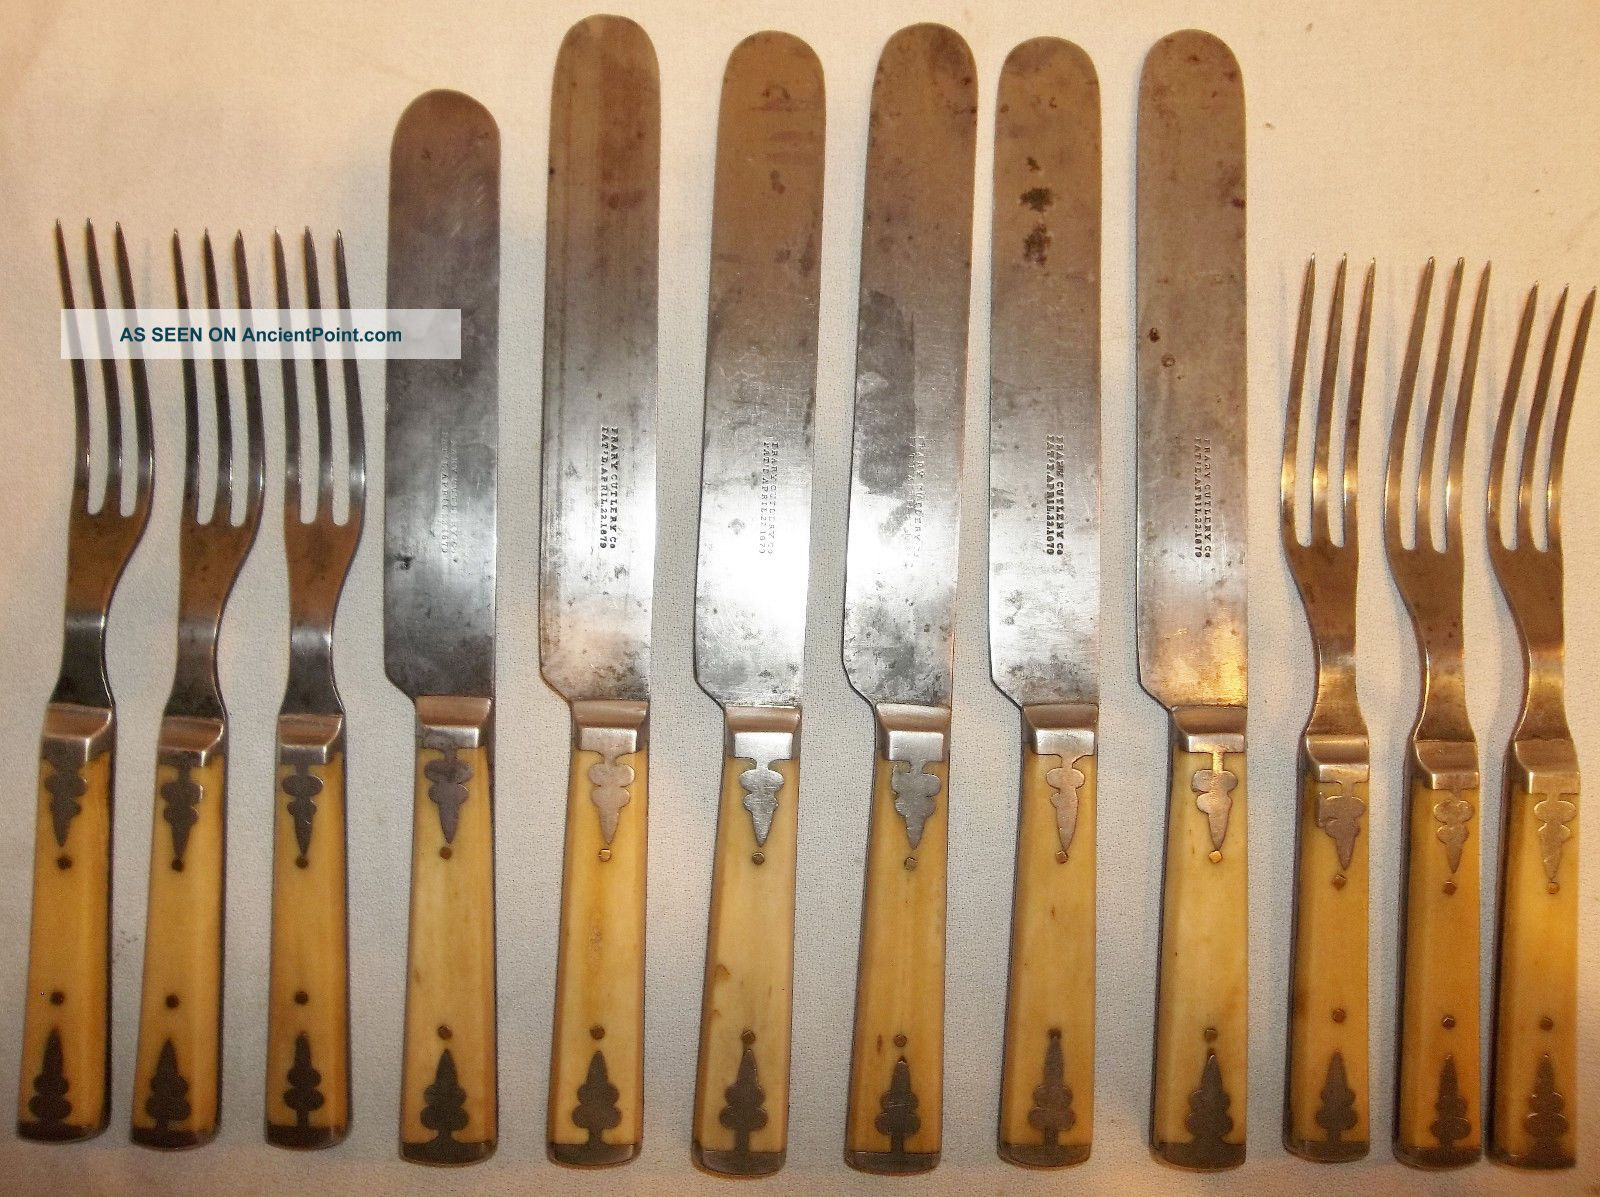 12 Antique Steer/bovine Bone Handled Flatware 6 Knives & 6 Forks Frary Cutlery Other Antique Home & Hearth photo